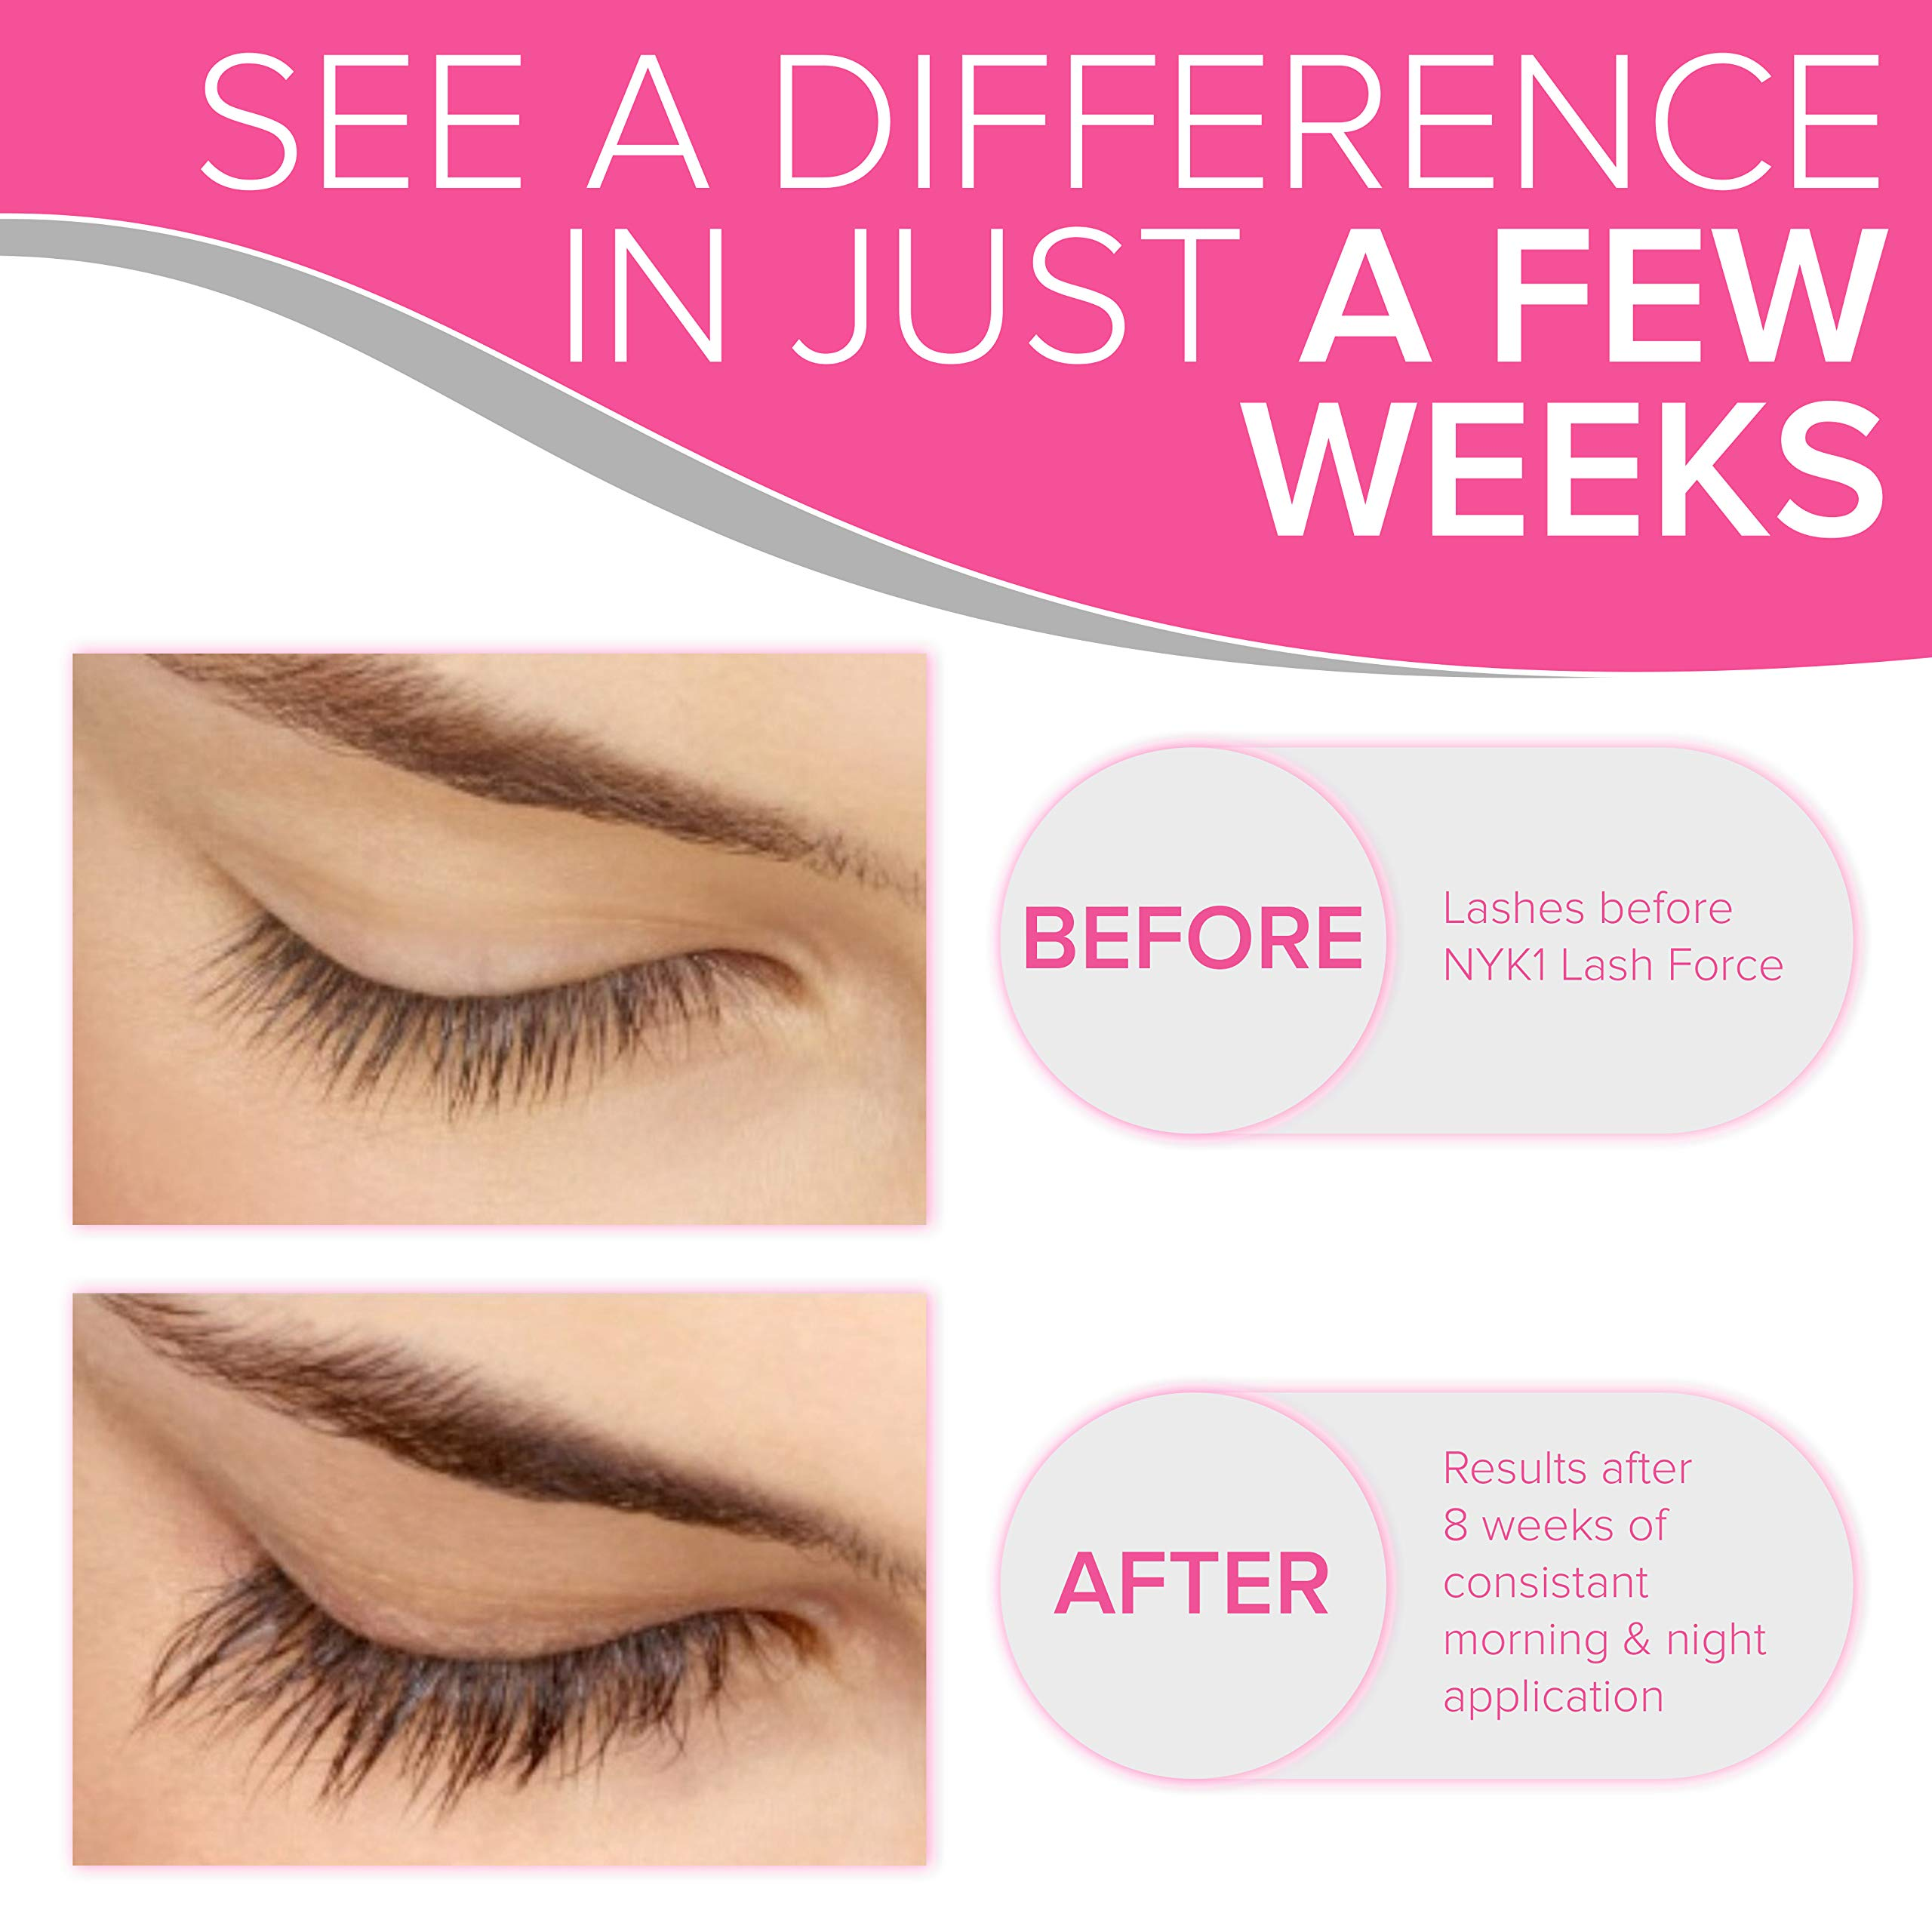 AMAZING Lash Force Eyelash Growth Serum BEST SELLER (8ml) NYK1 Eyelash Serum Brow Lash Growth Serum THE ONE LASH SERUM THAT REALLY WORKS Grow Thicker Longer Lift Eyelashes Enhancer Rapid Lash Growth